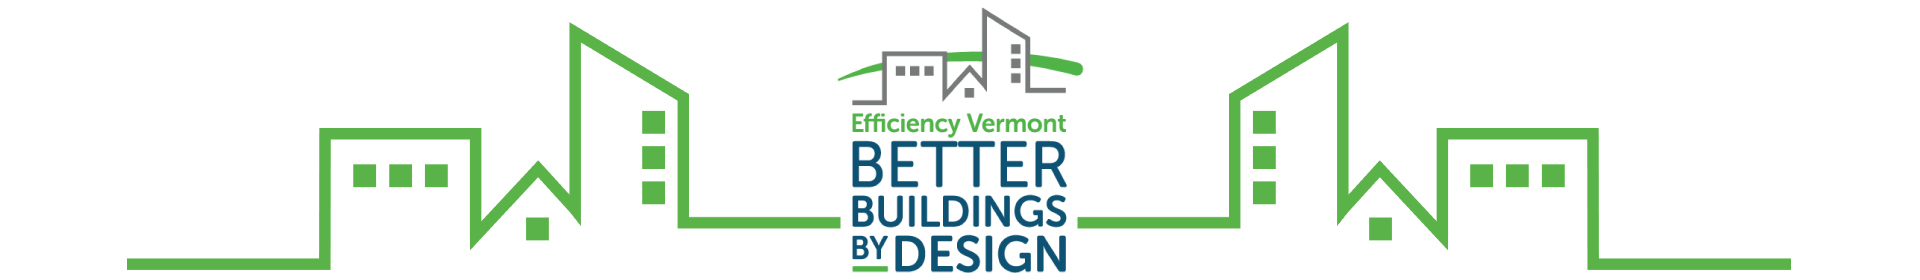 Better Buildings by Design 2020 Event Banner